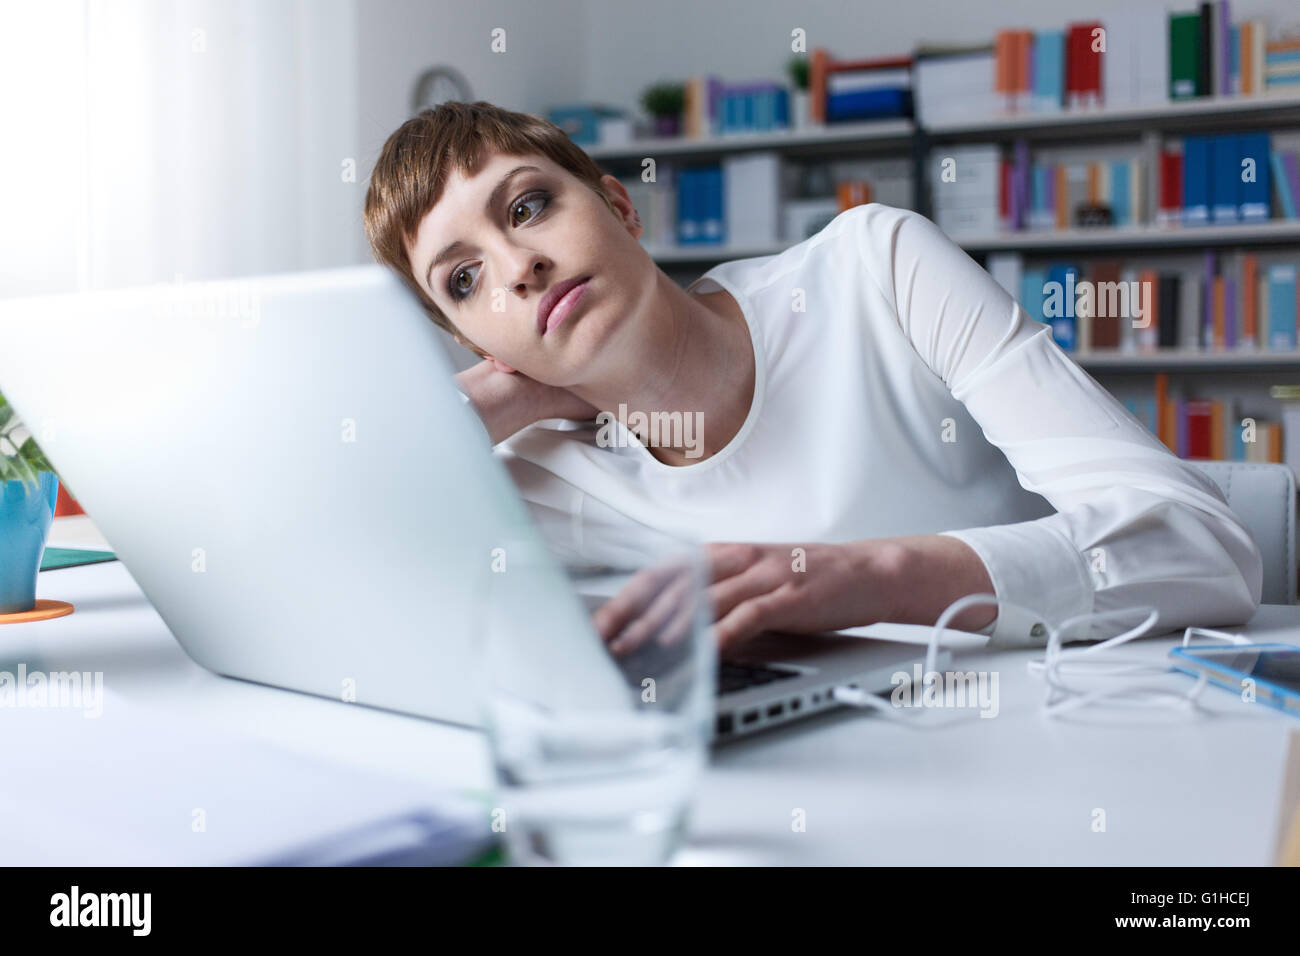 Tired woman in the office leaning on her hand an using a laptop - Stock Image